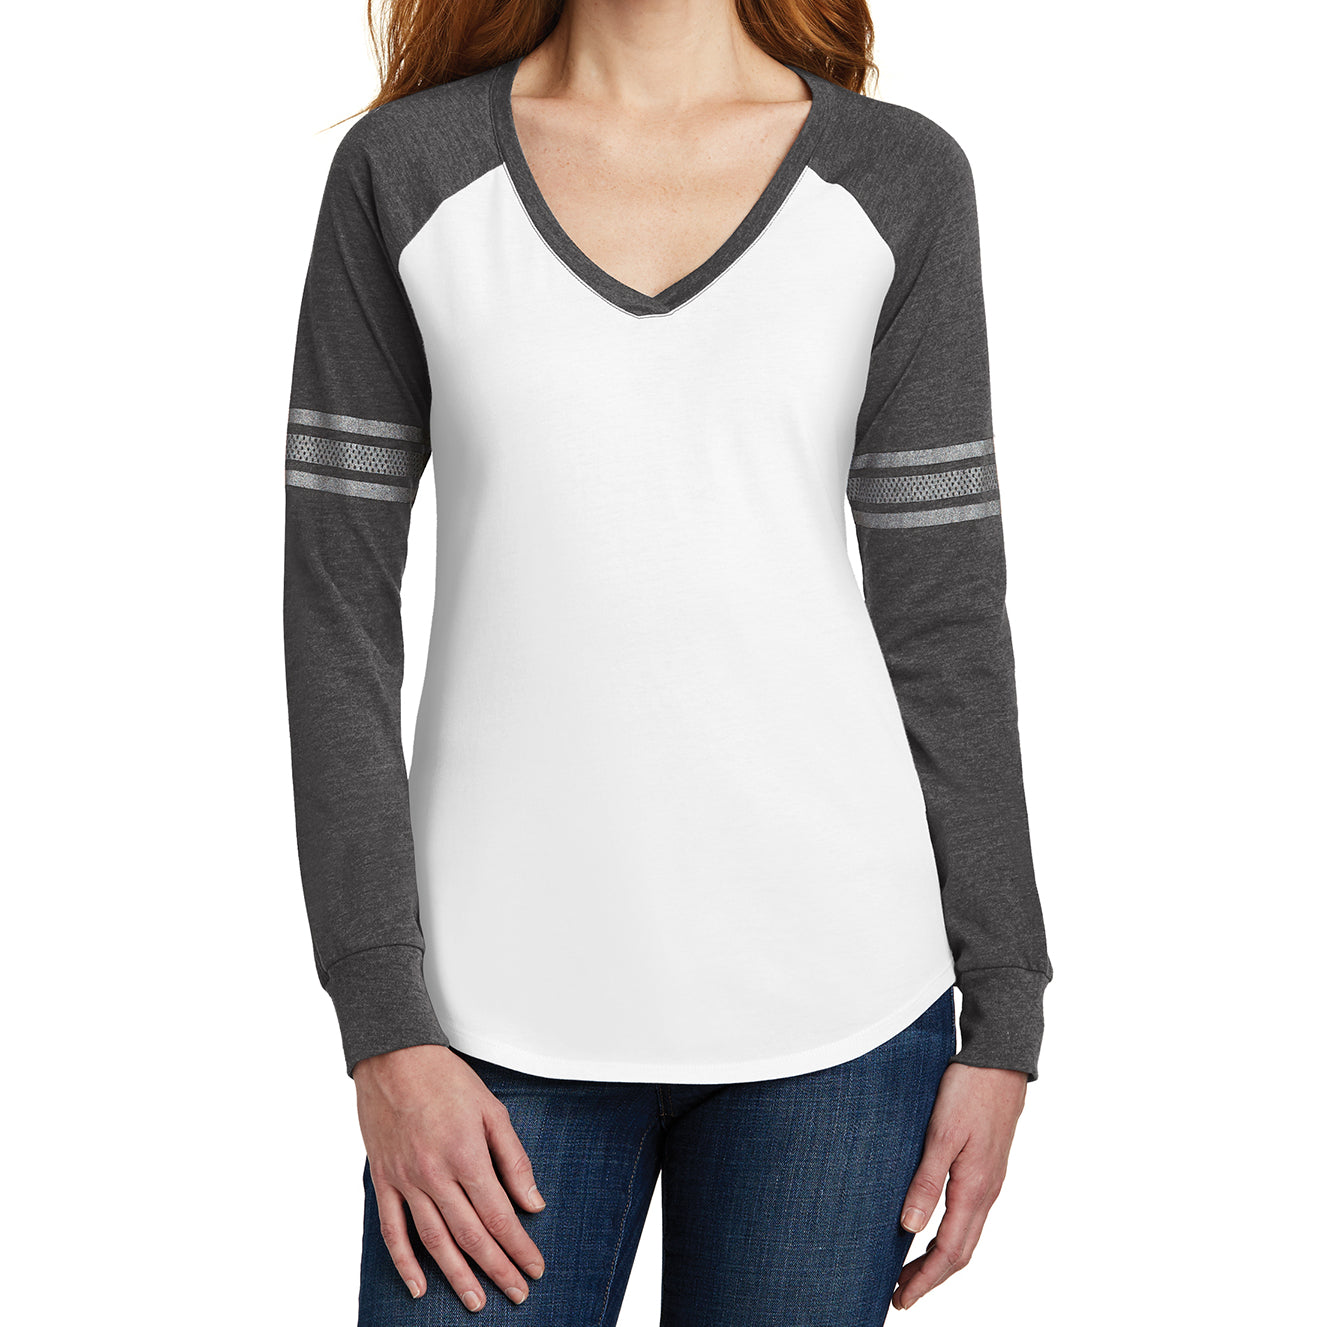 Women's Game Long Sleeve V-Neck Tee - White/ Heathered Charcoal/ Silver - Front